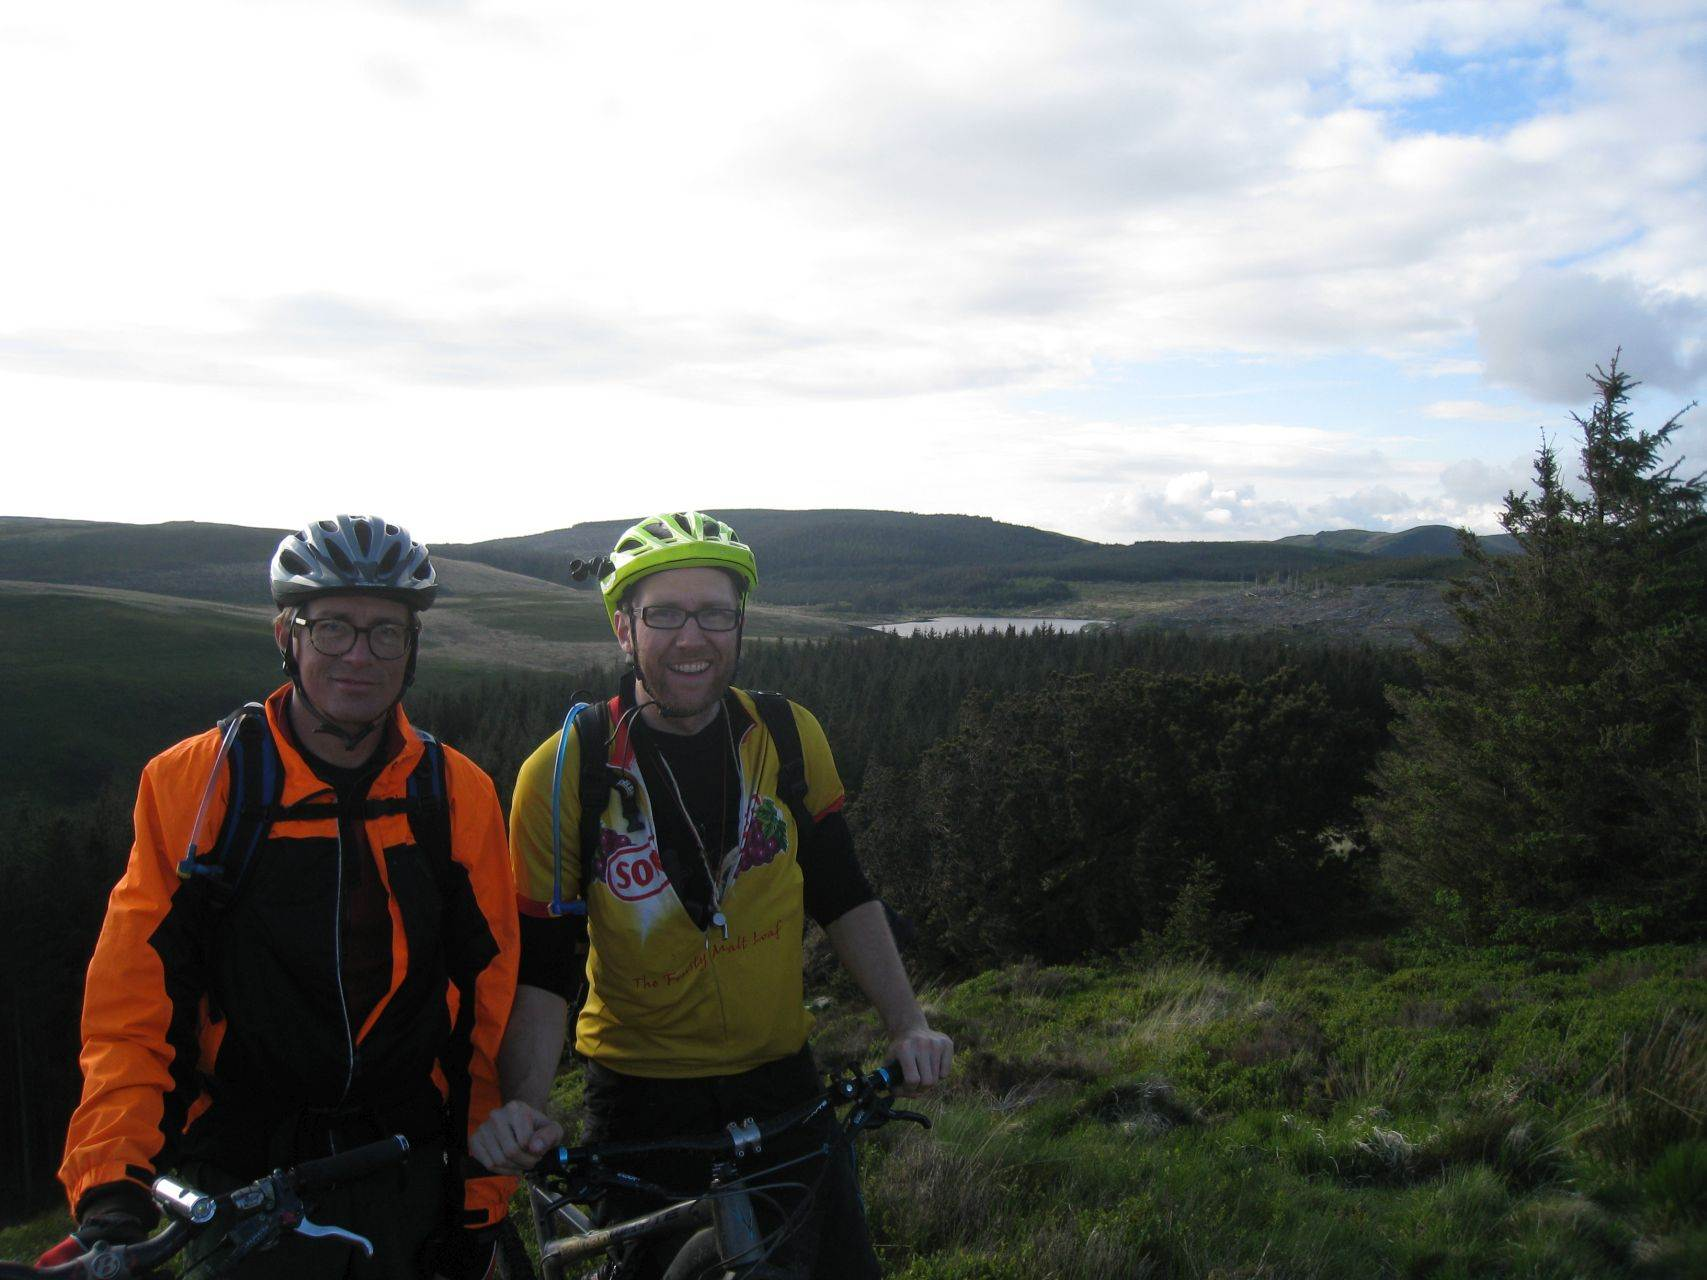 Day 4 - Jon and Paul late in the day at Bwlch Nant yr Arian trail centre © Paul Bonwick